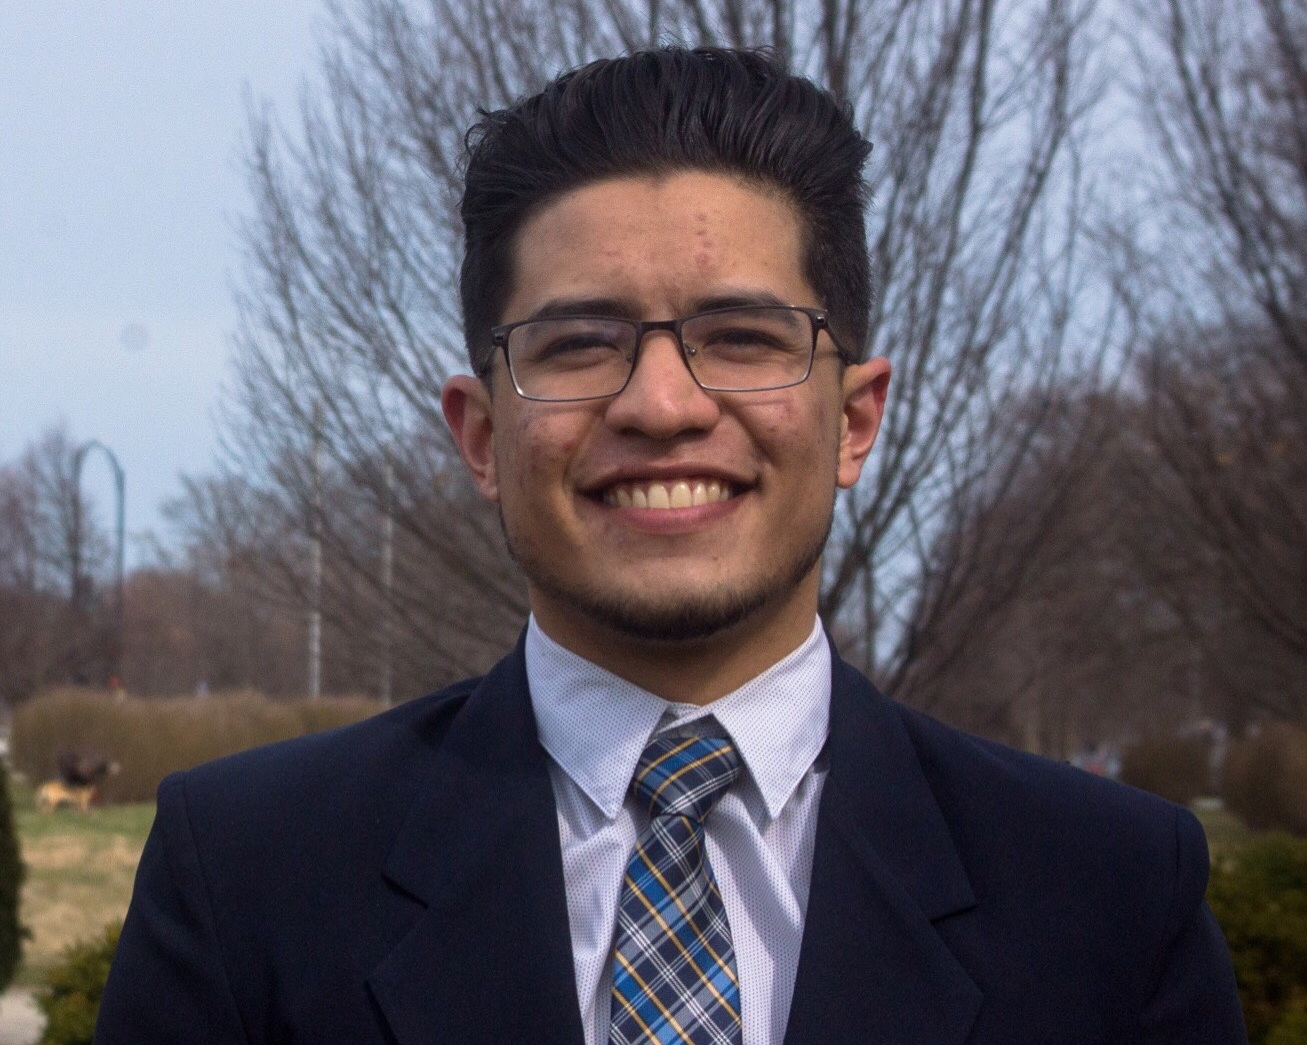 Diego Cardenas   Diego graduated from the University of Chicago in 2018, where he studied Sociology. While in school, Diego chaired the Multicultural Student Advisory Committee and was a leader in outreach and mentoring programs for at-risk youth. He also conducted research on the use of social media by disadvantaged young people.